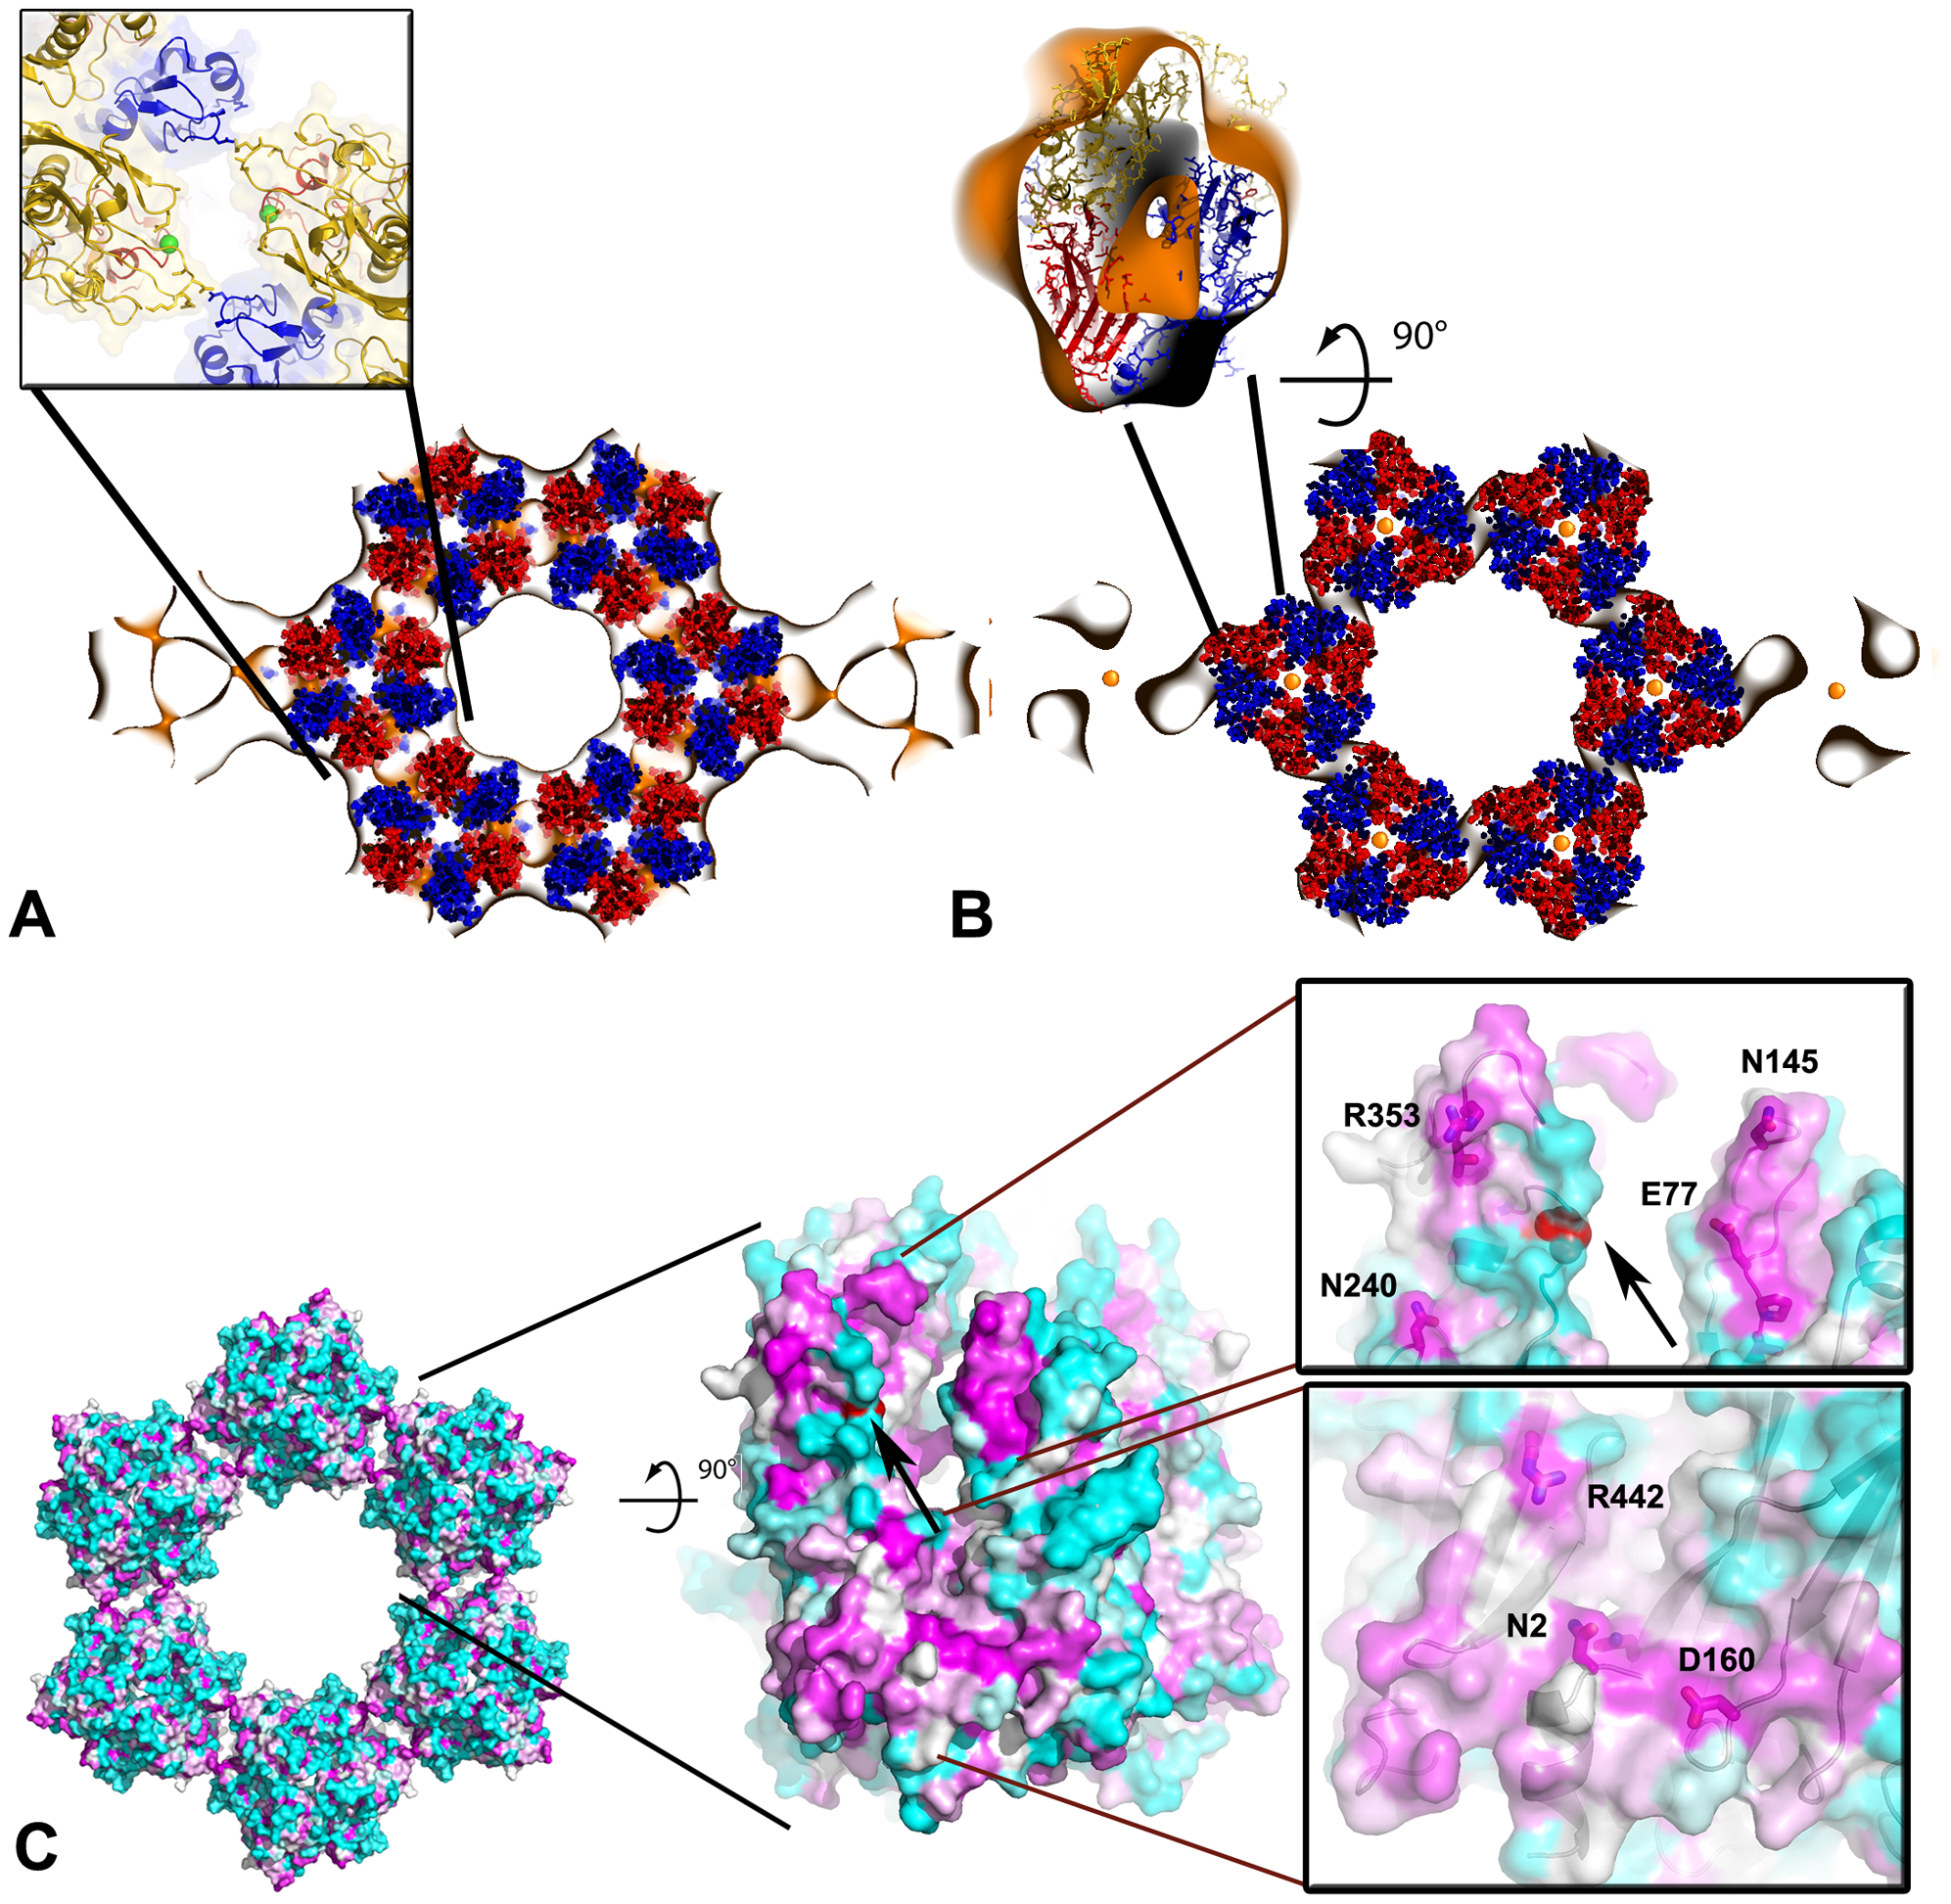 Pseudo-atomic model of the honeycombed assembly of D13.